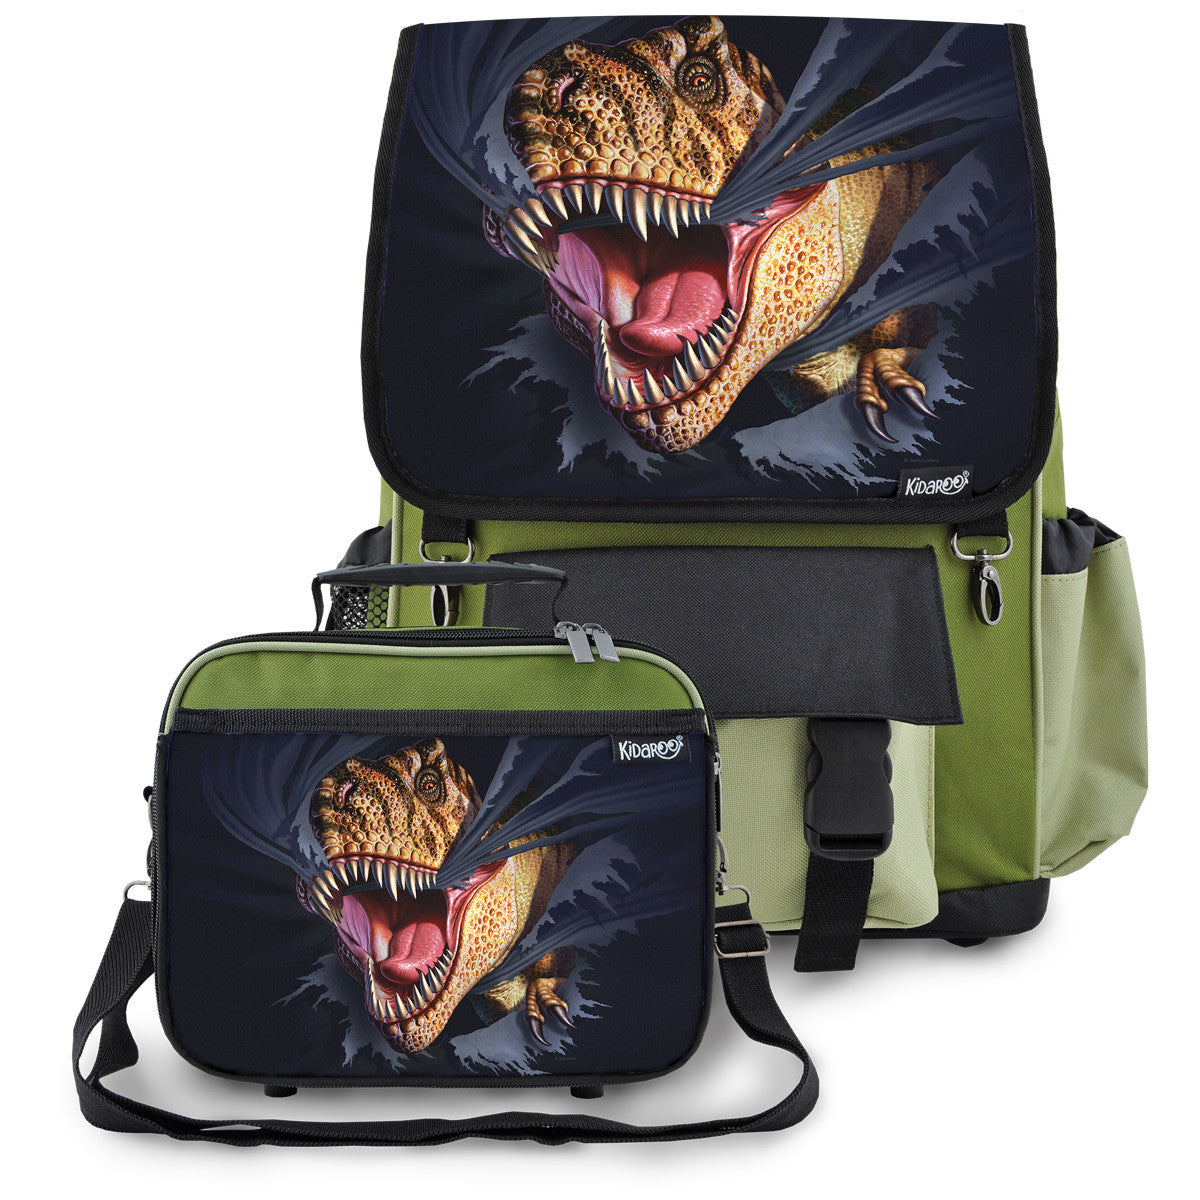 Kidaroo Khaki Green Tearing T-Rex Dinosaur School Backpack & Lunchbox Set for Boys, Girls, Kids